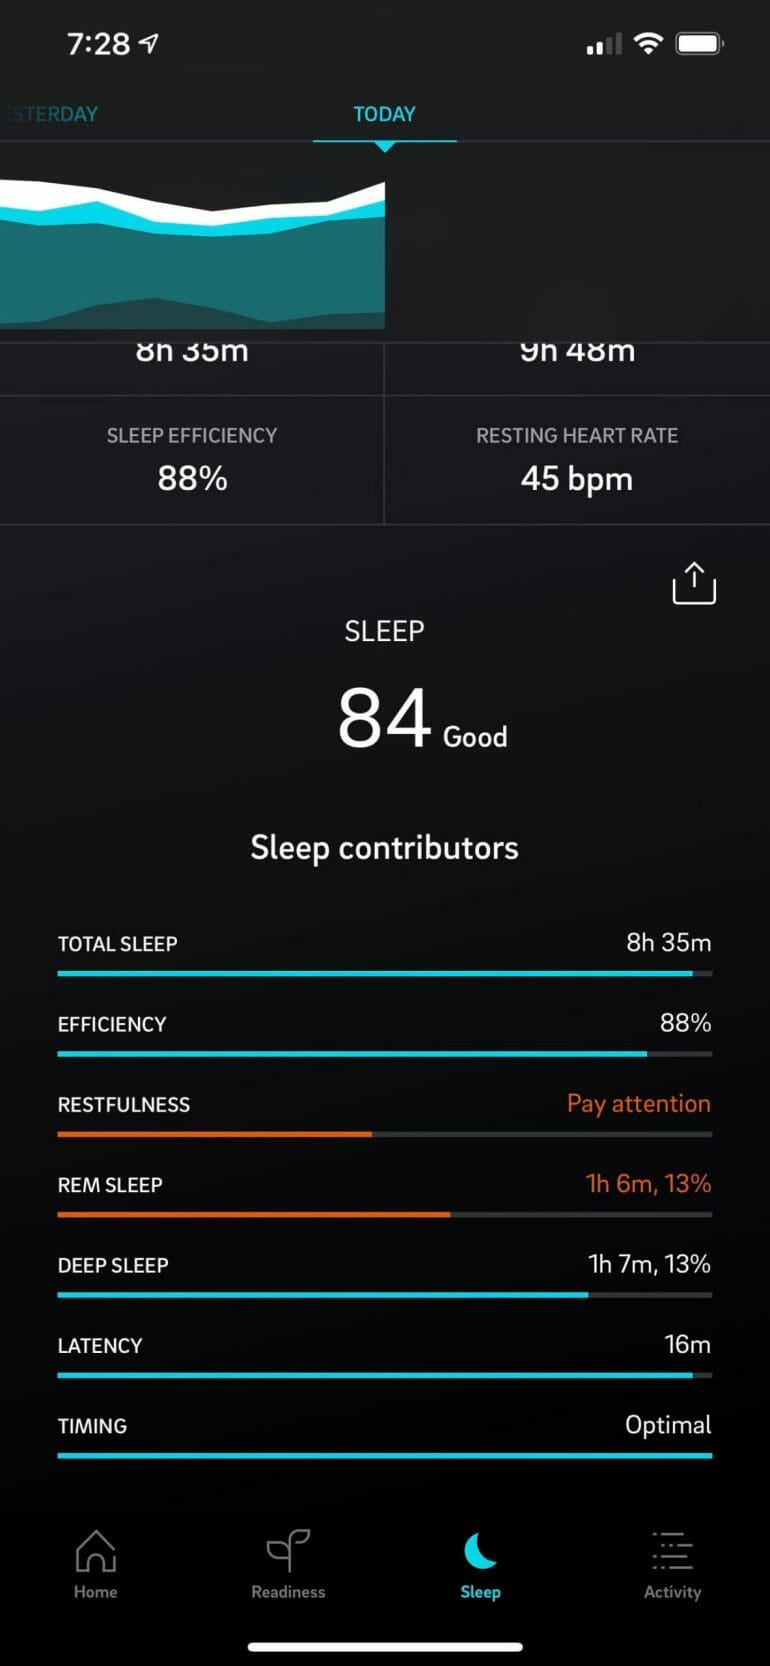 Sleep tracking can be a powerful tool but only if it's accurate.